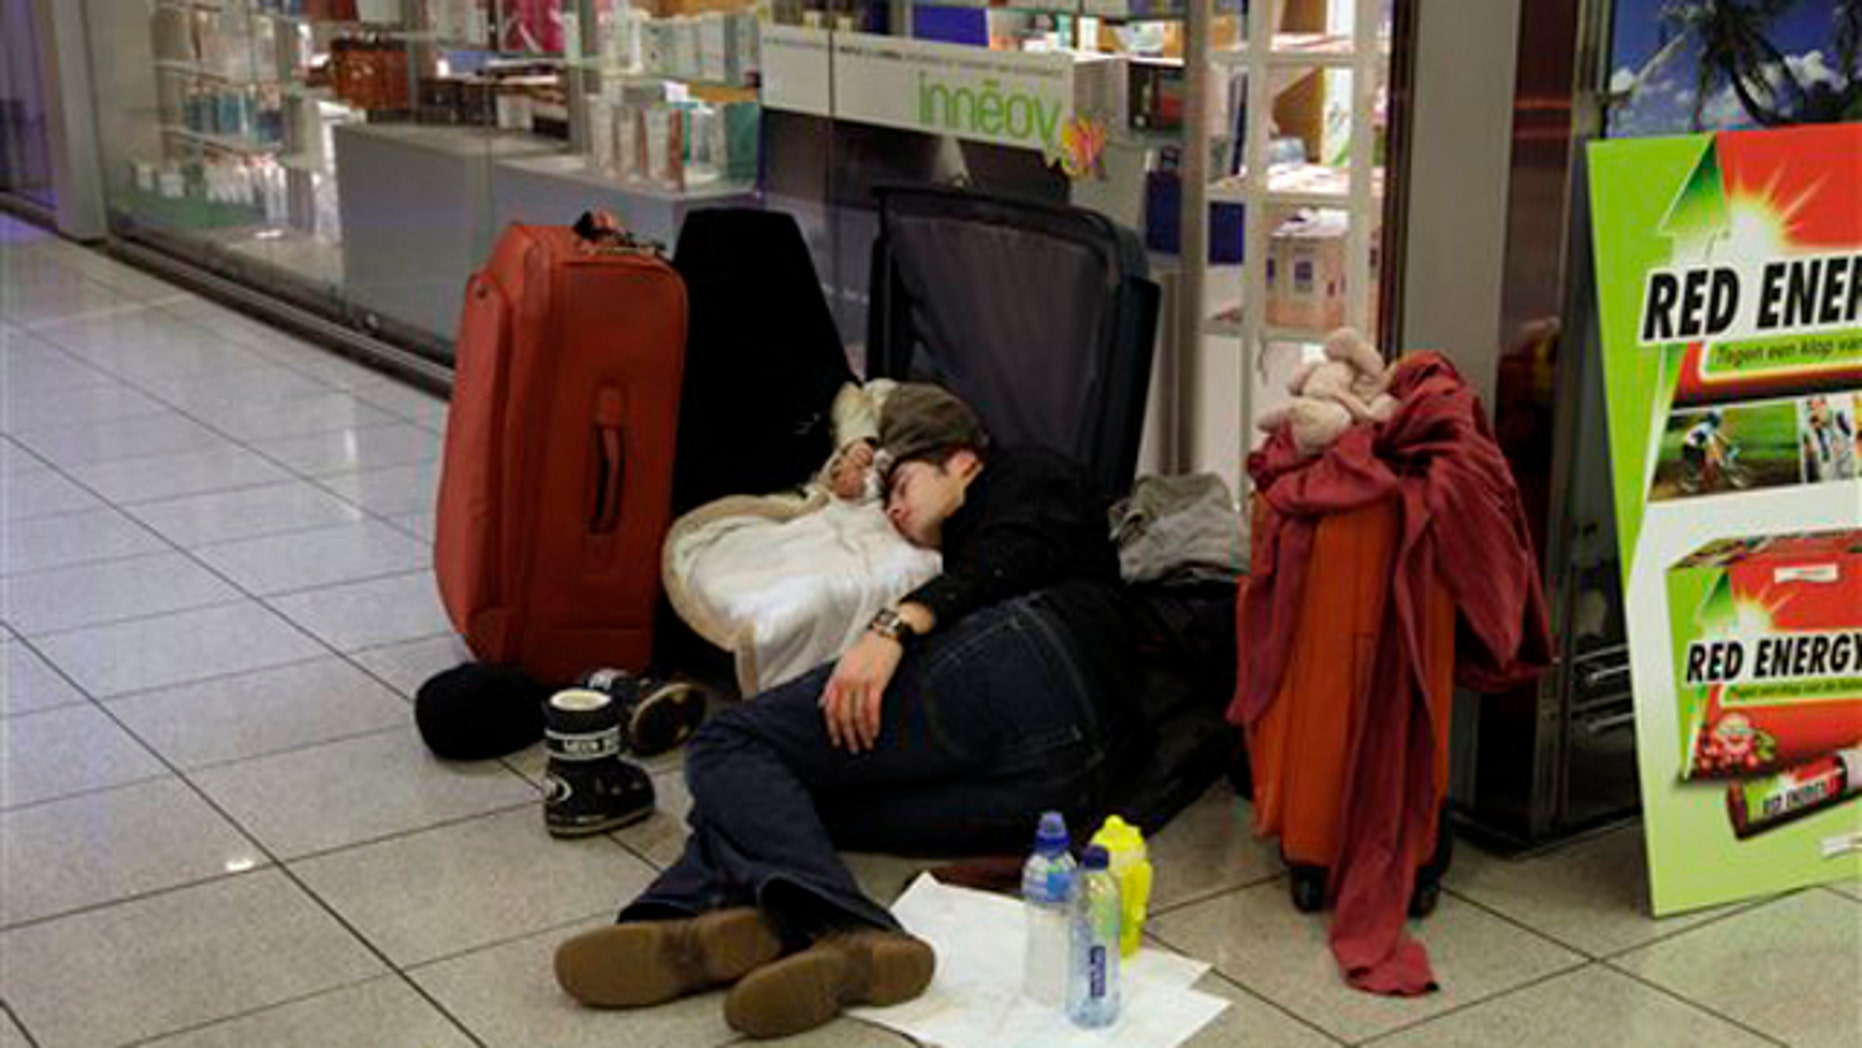 Dec. 24, 2010: A man sleeps with his infant in a suitcase at Zaventem airport in Brussels. A new batch of snow caused air traffic chaos in Belgium on Friday, with its main airport either canceling or delaying many flights.